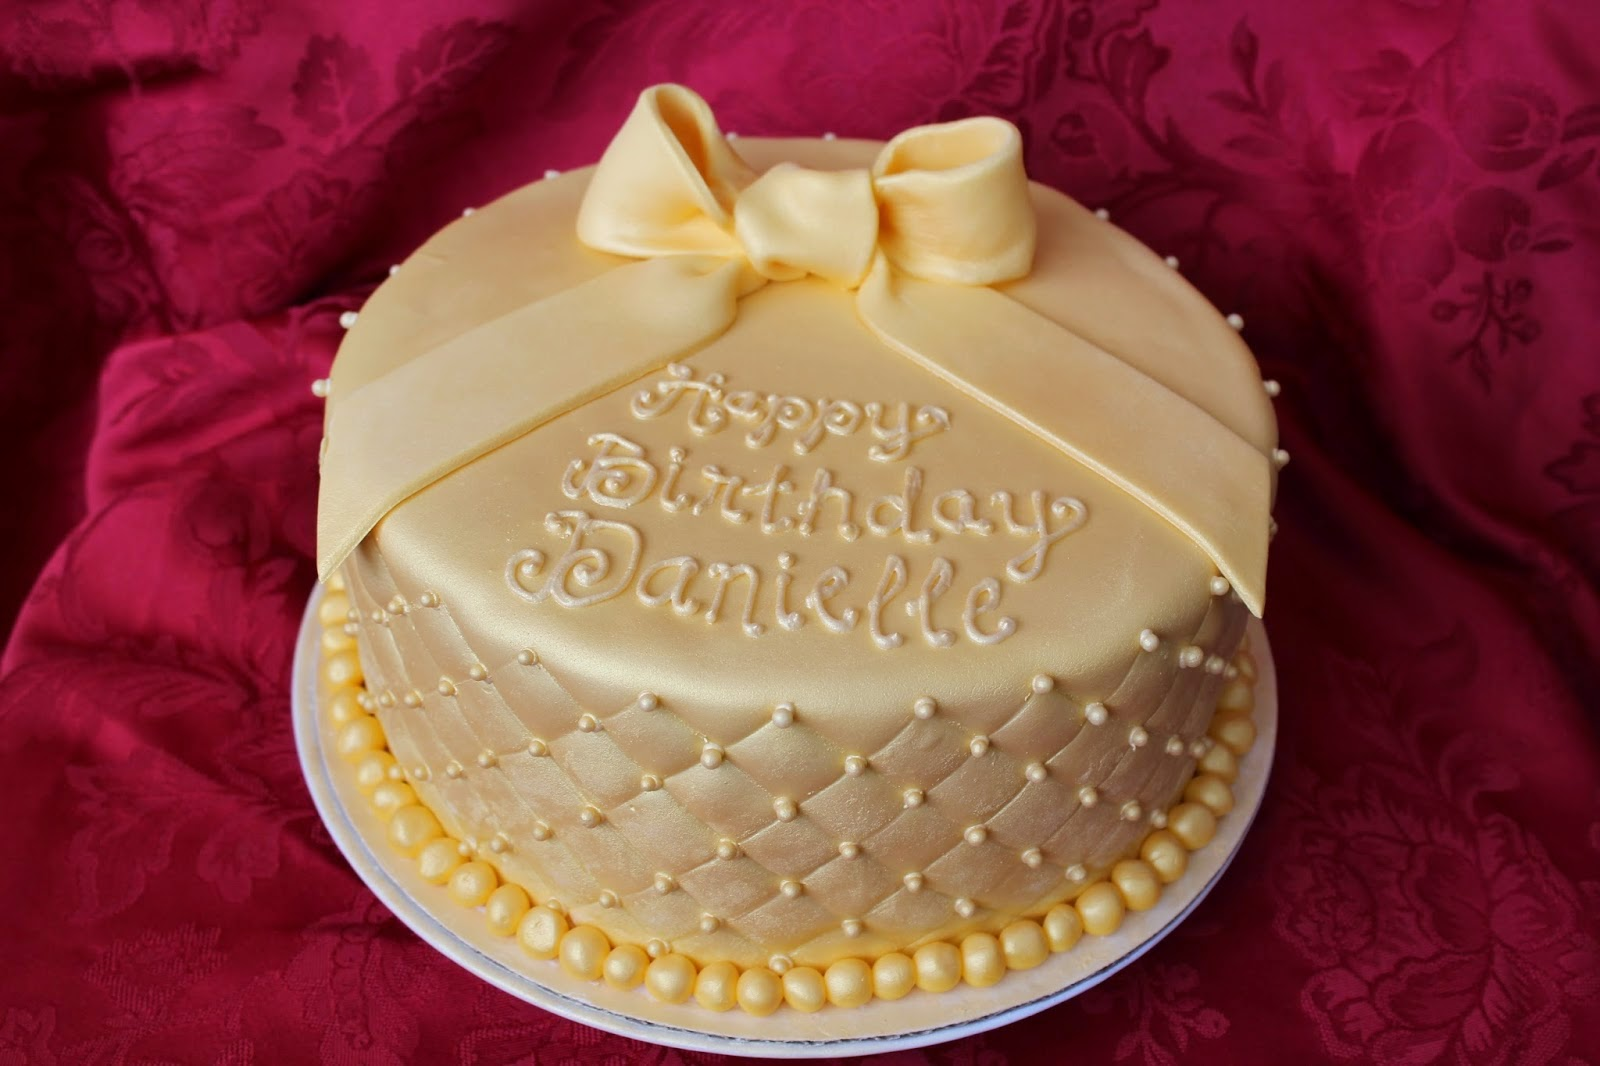 The birthday cake gold for your spouse Miscellaneous garden